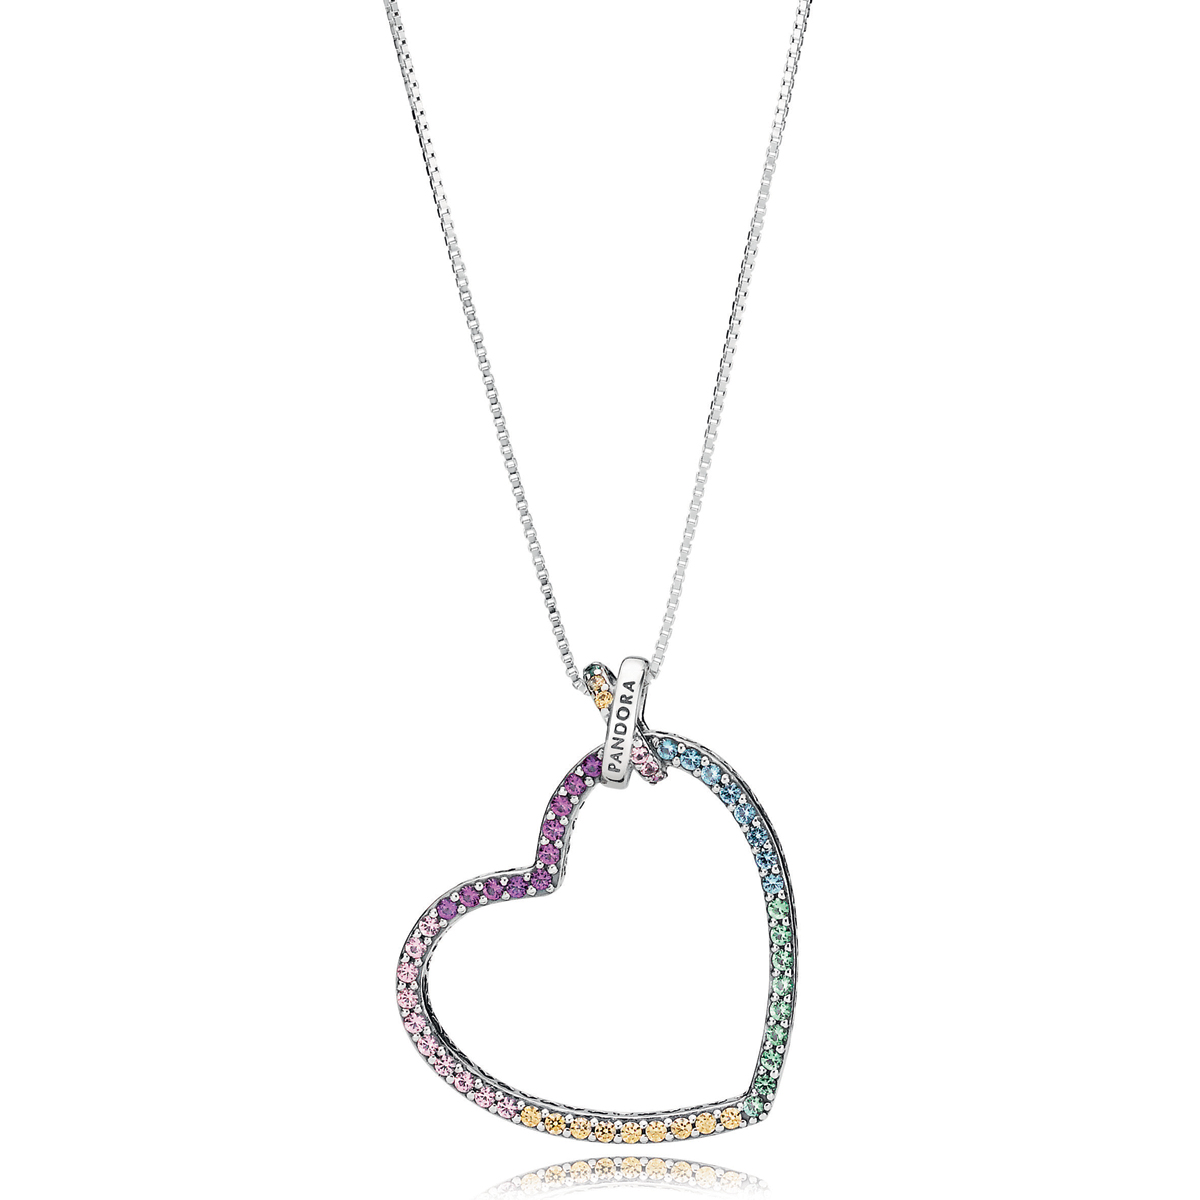 return mini items silver necklace to ed double in wid id jewelry heart fit constrain br hei with tag fmt tiffany pendant